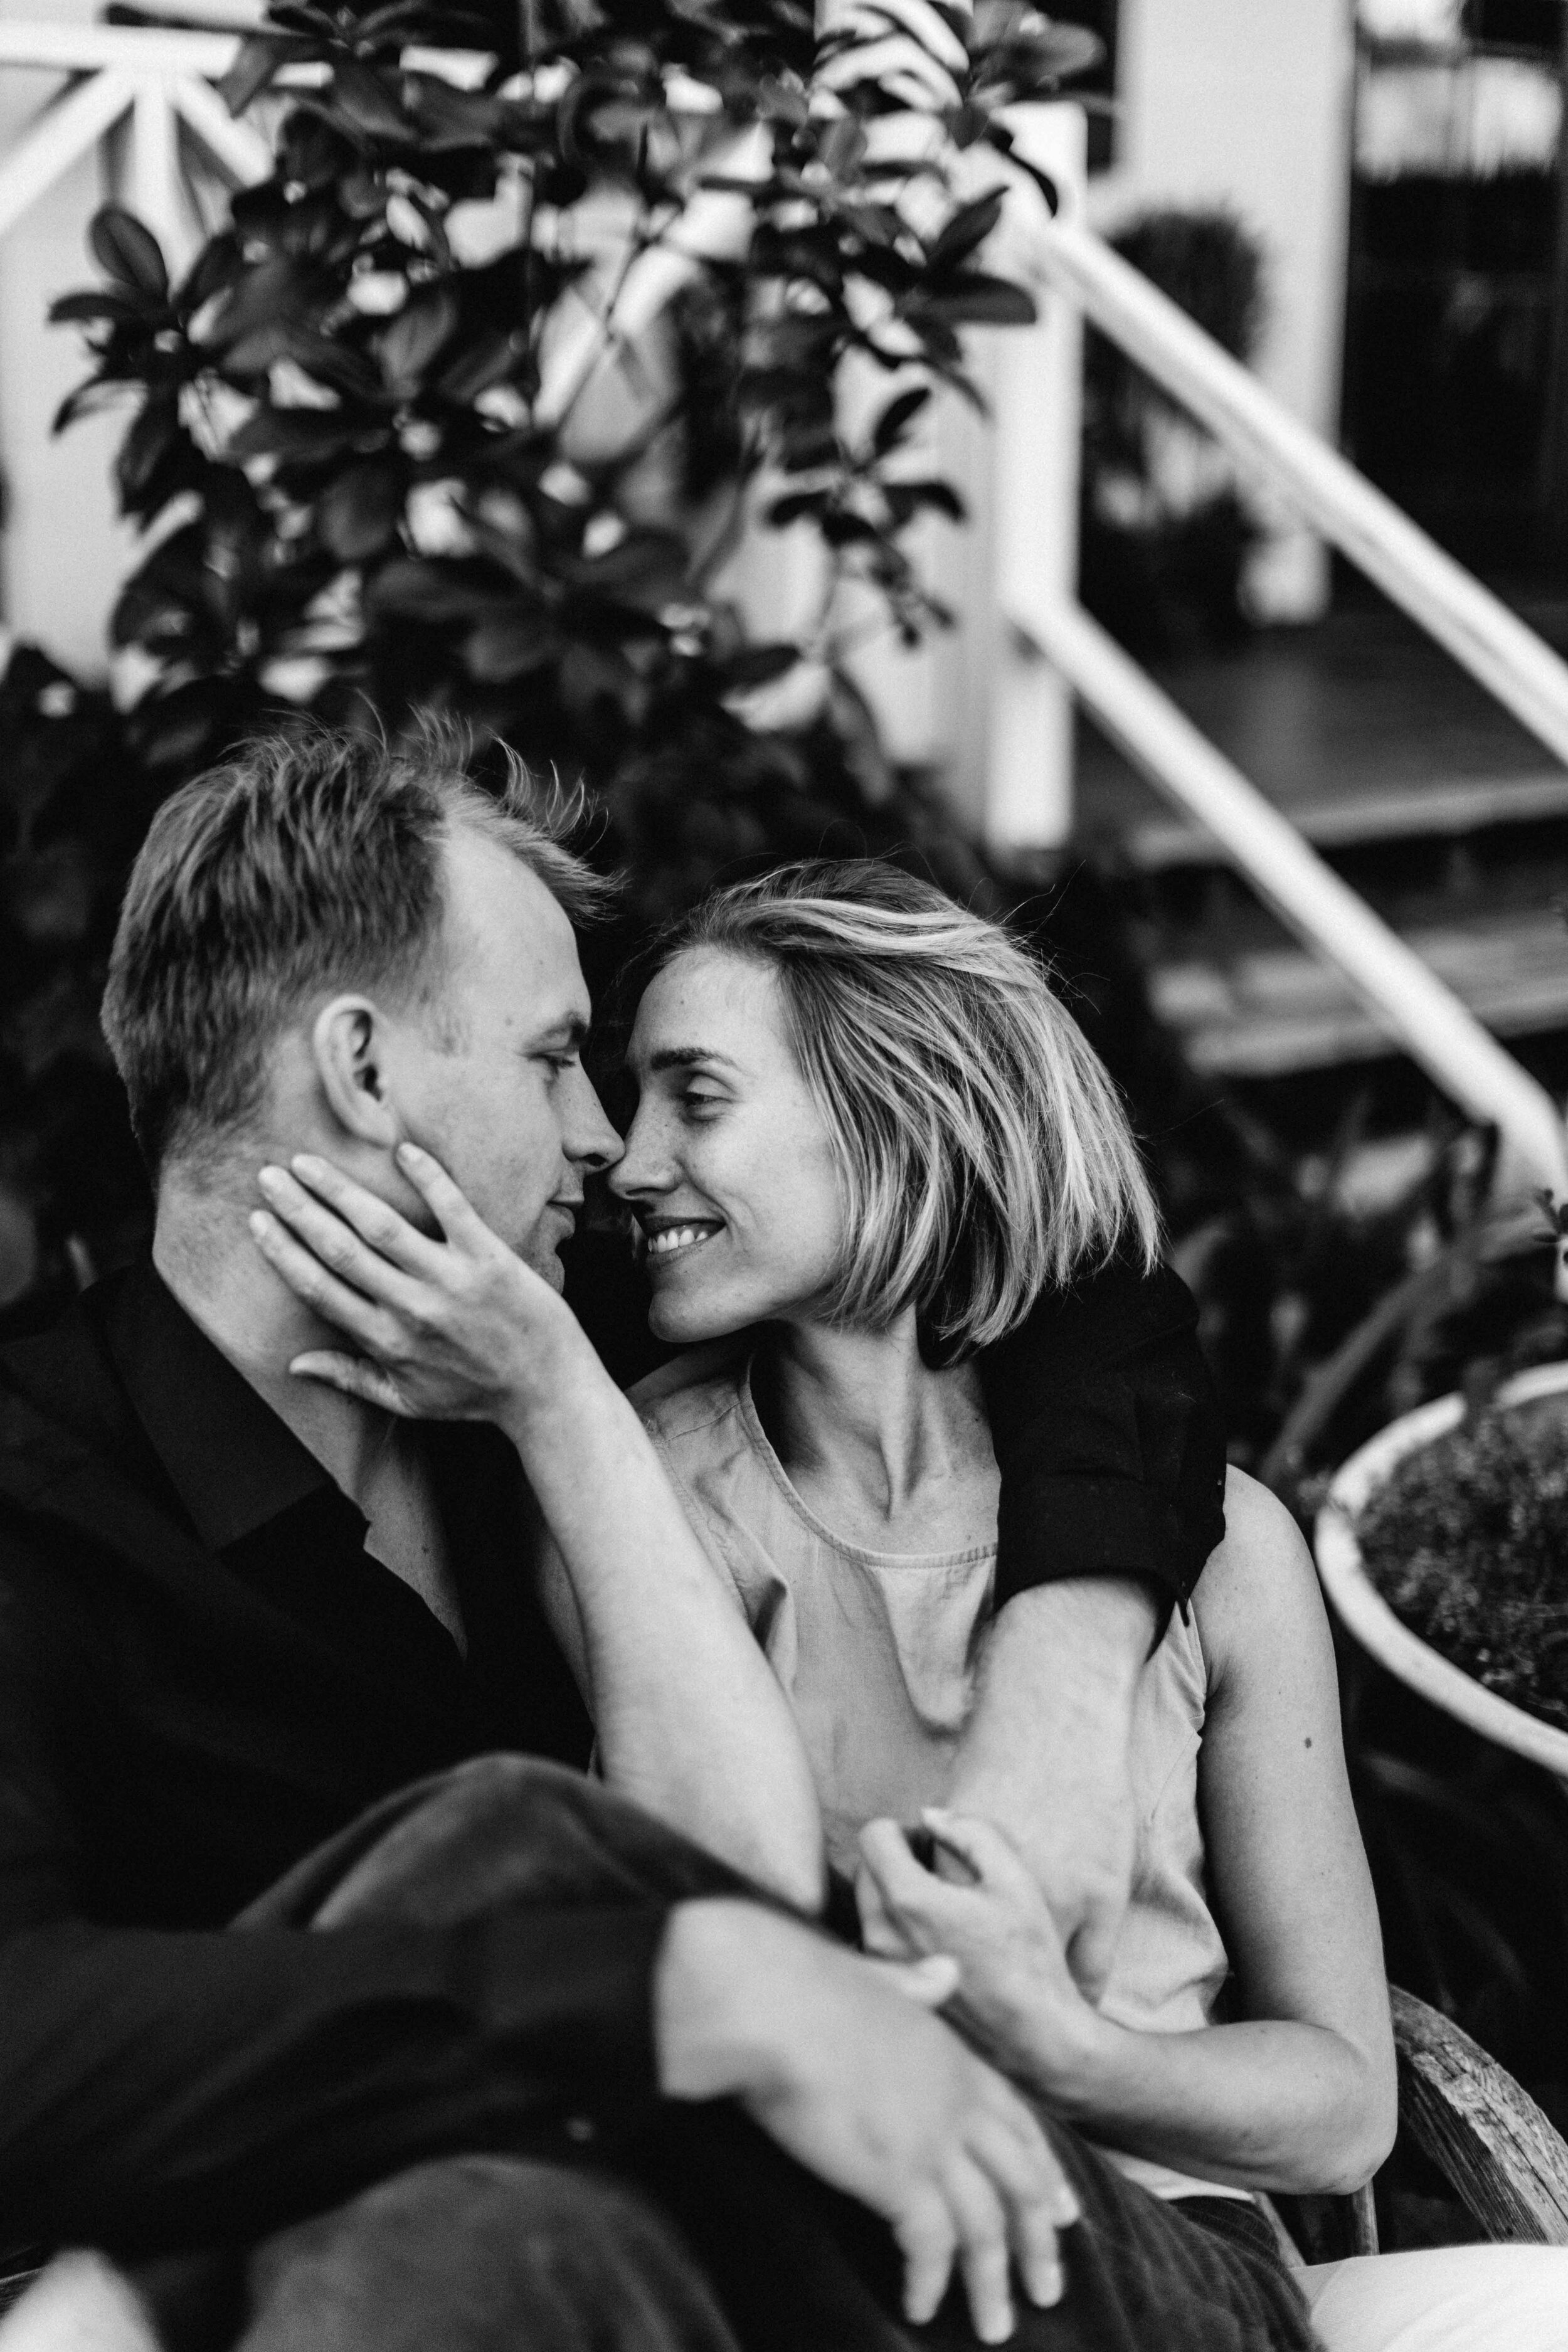 picton-engagement-photographer-wollondilly-david-esther-15.jpg